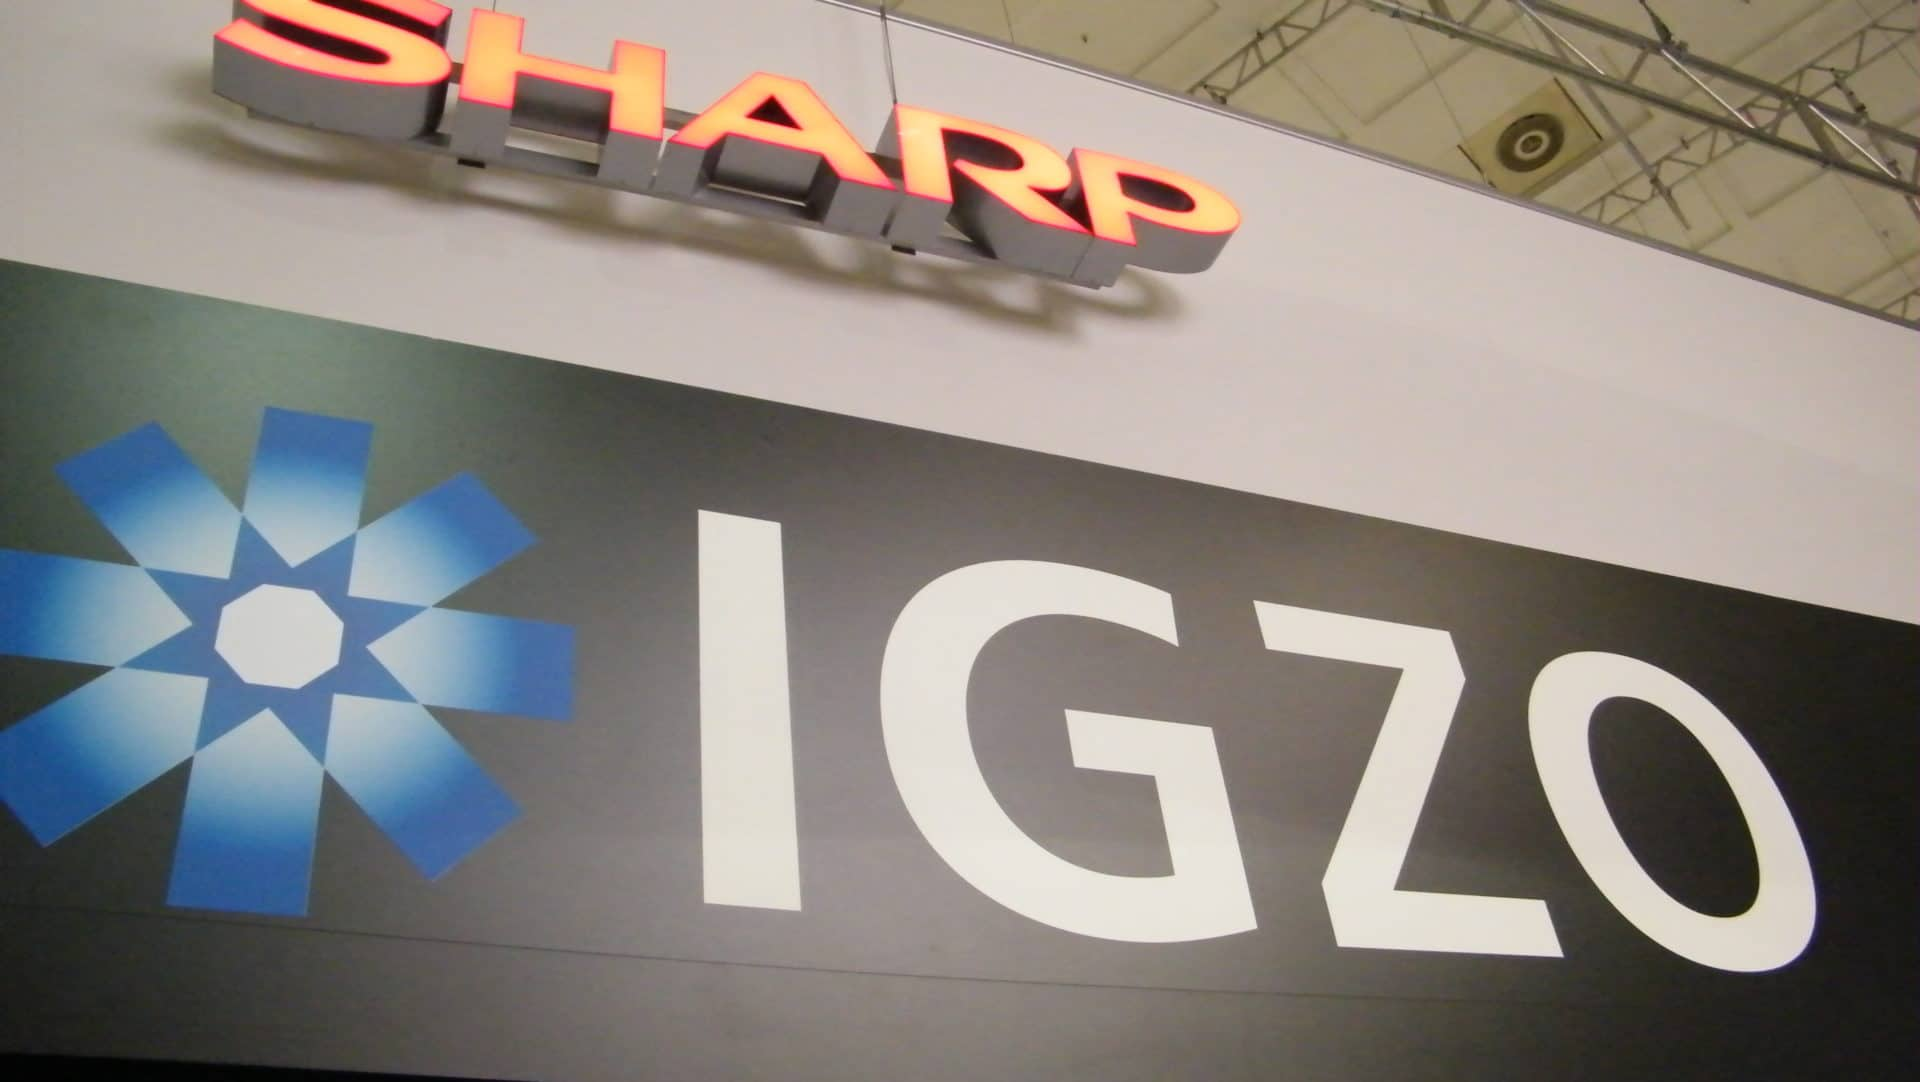 Sharp to provide flagship IGZO display panels